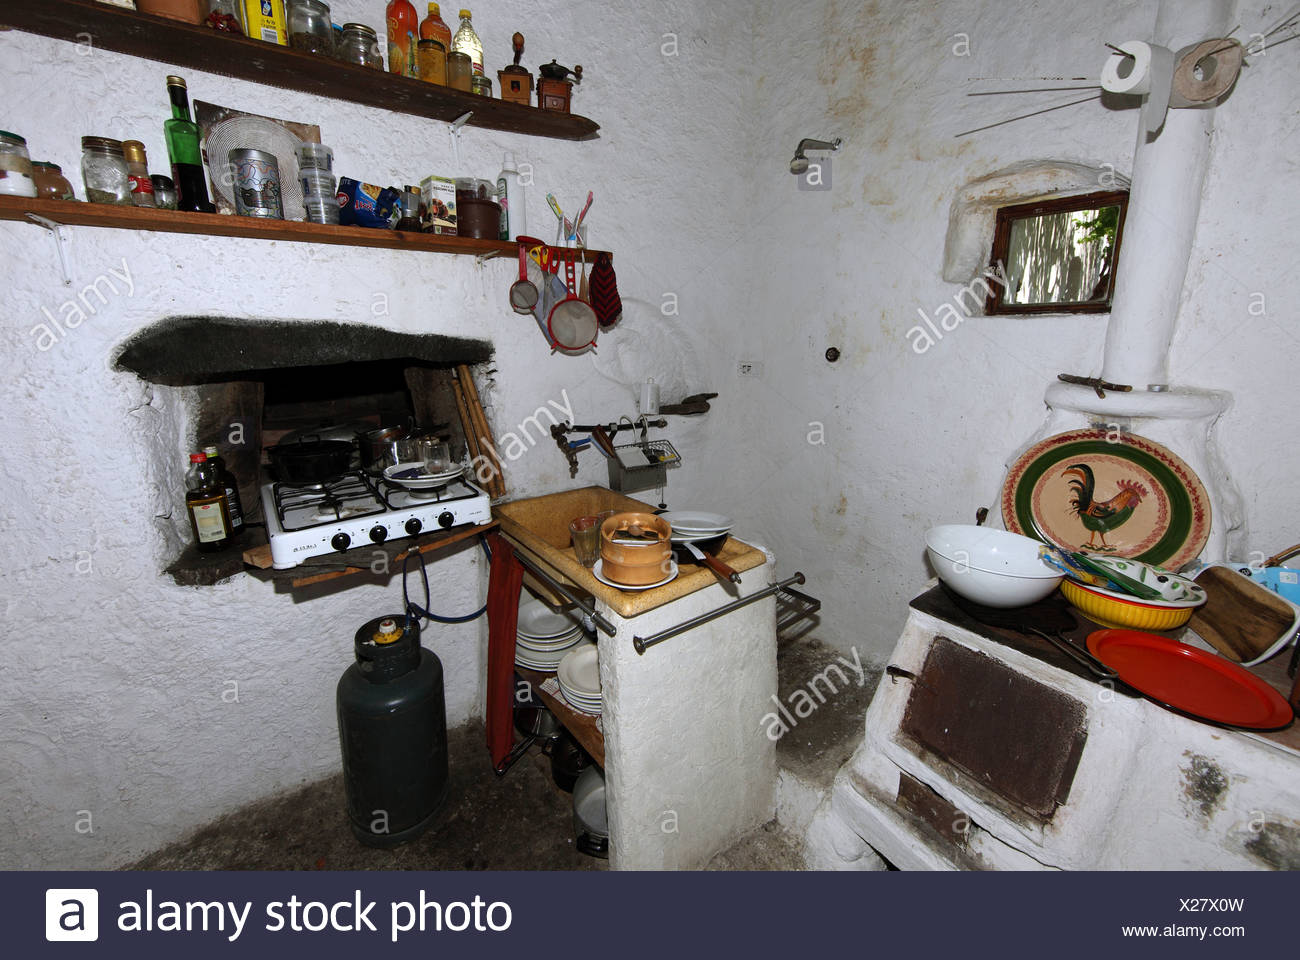 Alicudi, Italy, sparsely furnished kitchen - Stock Image